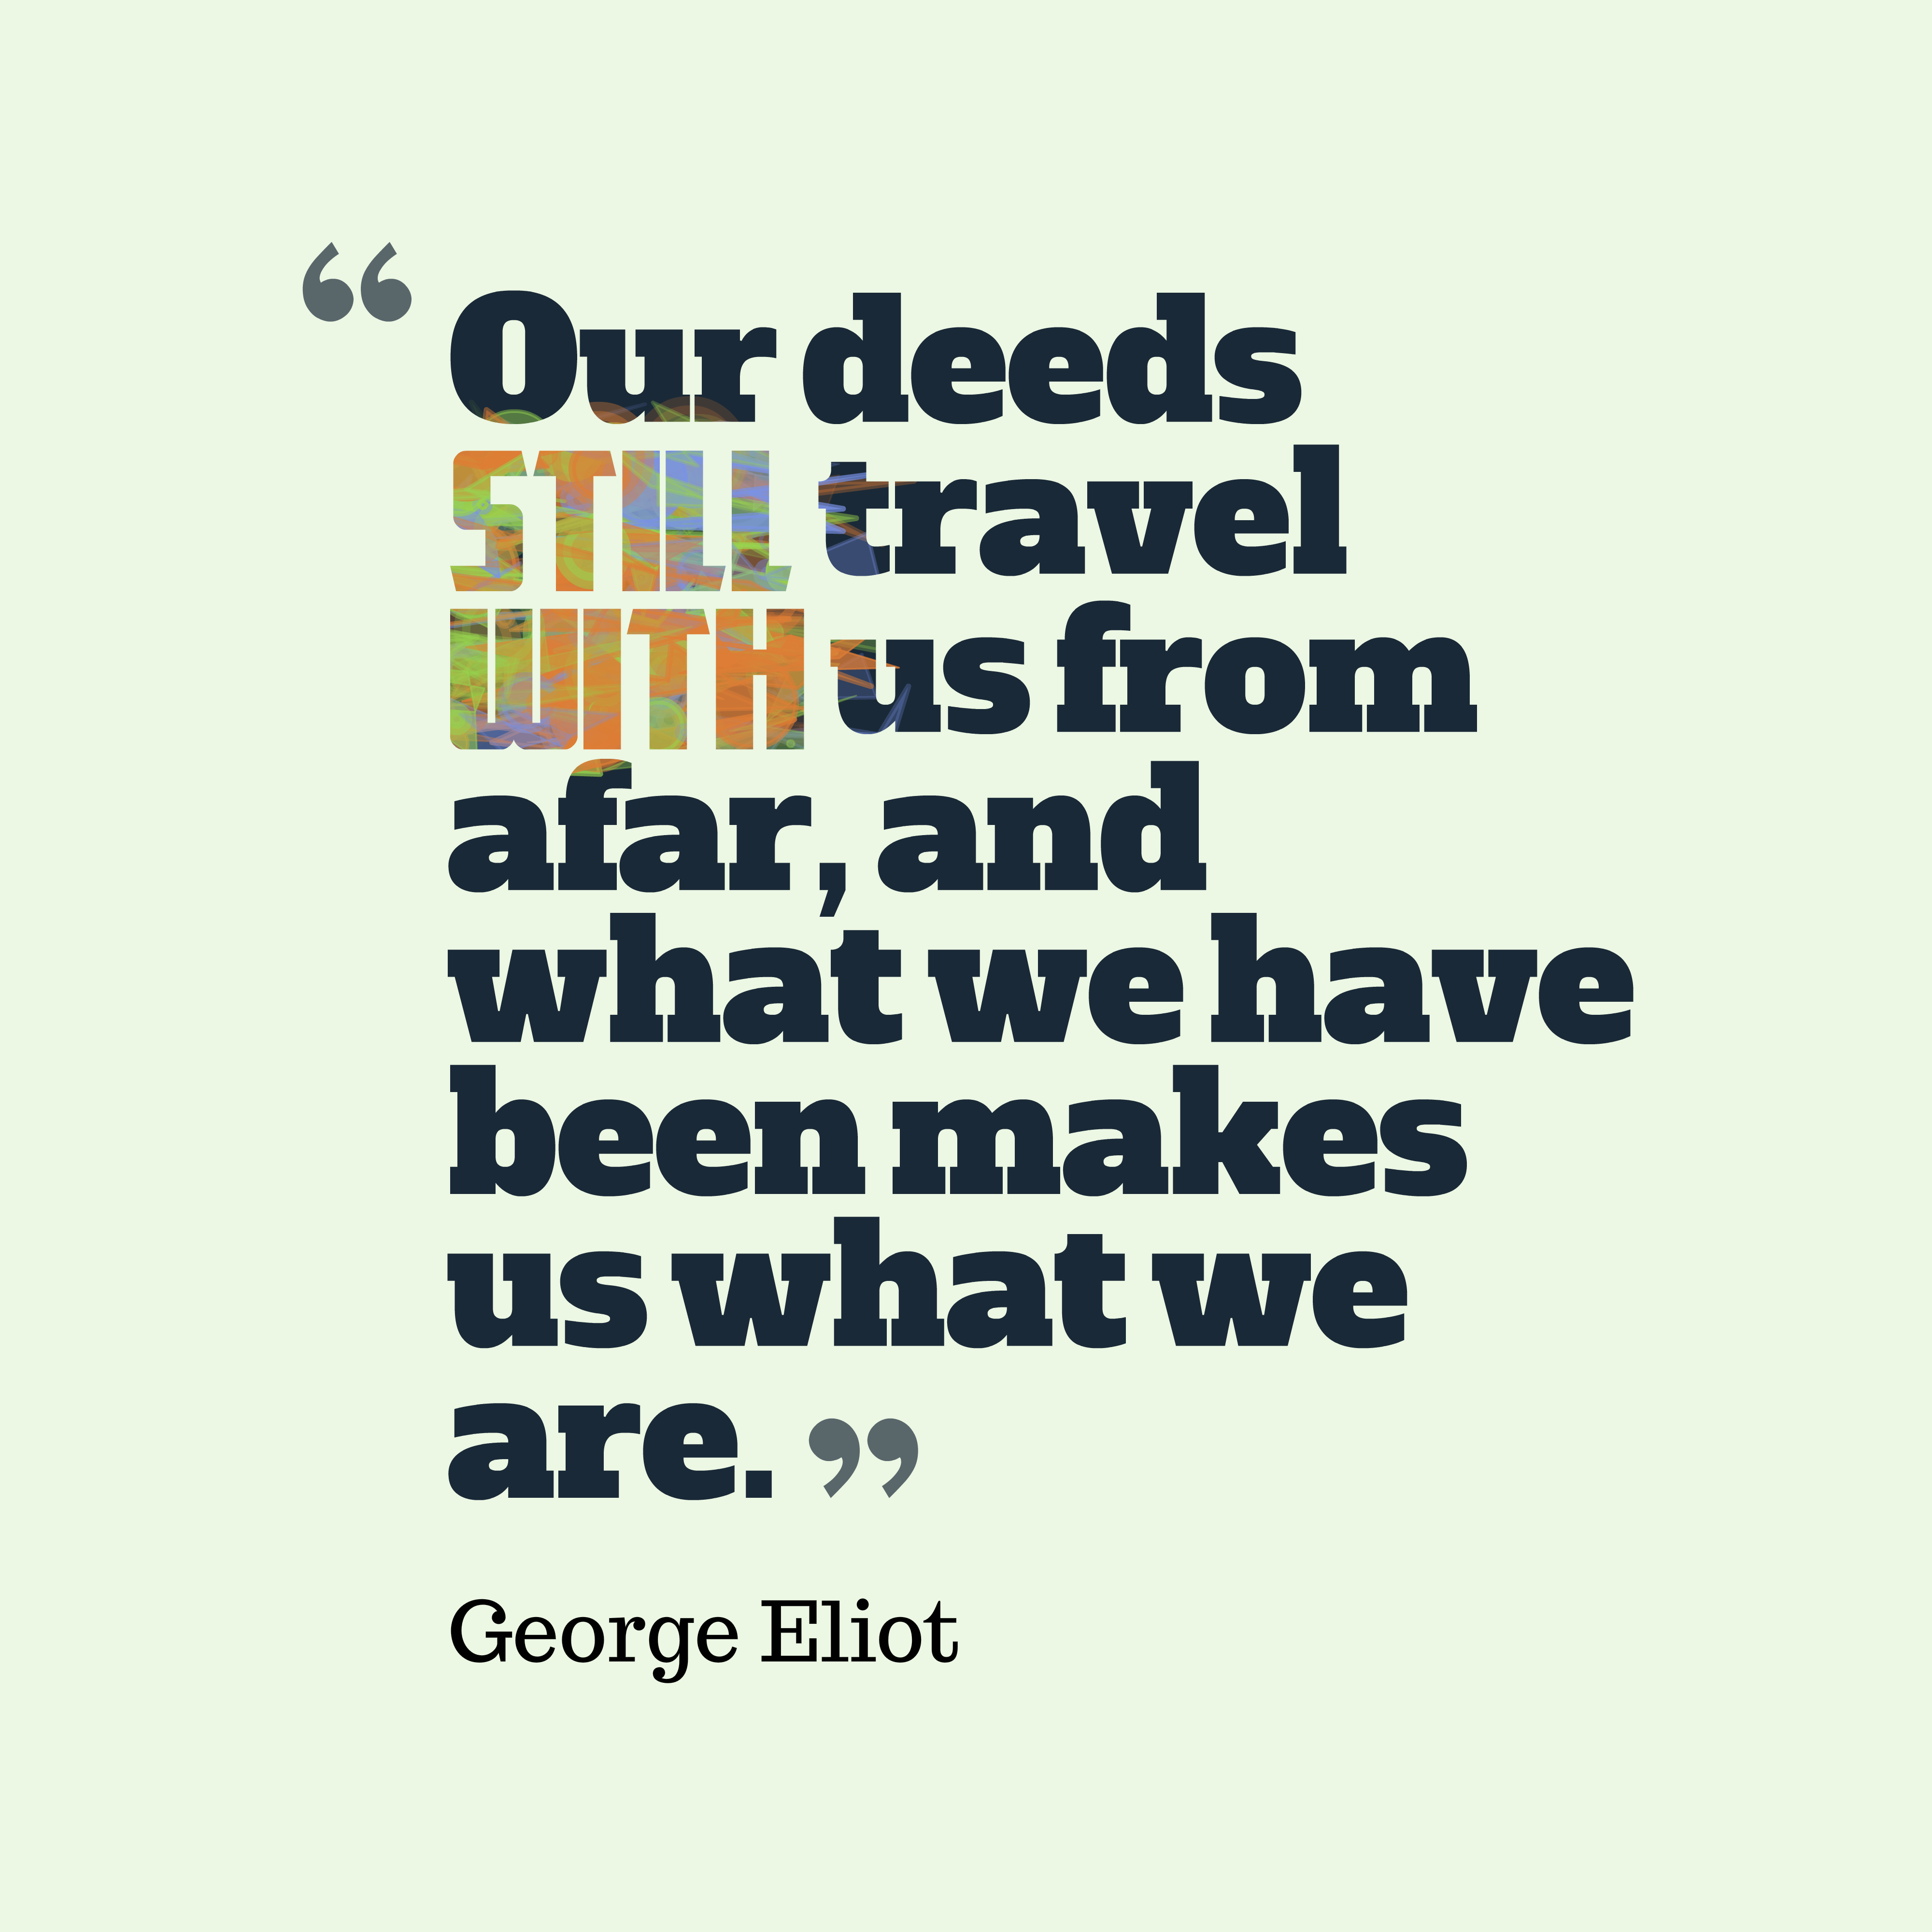 Quotes image of Our deeds still travel with us from afar, and what we have been makes us what we are.